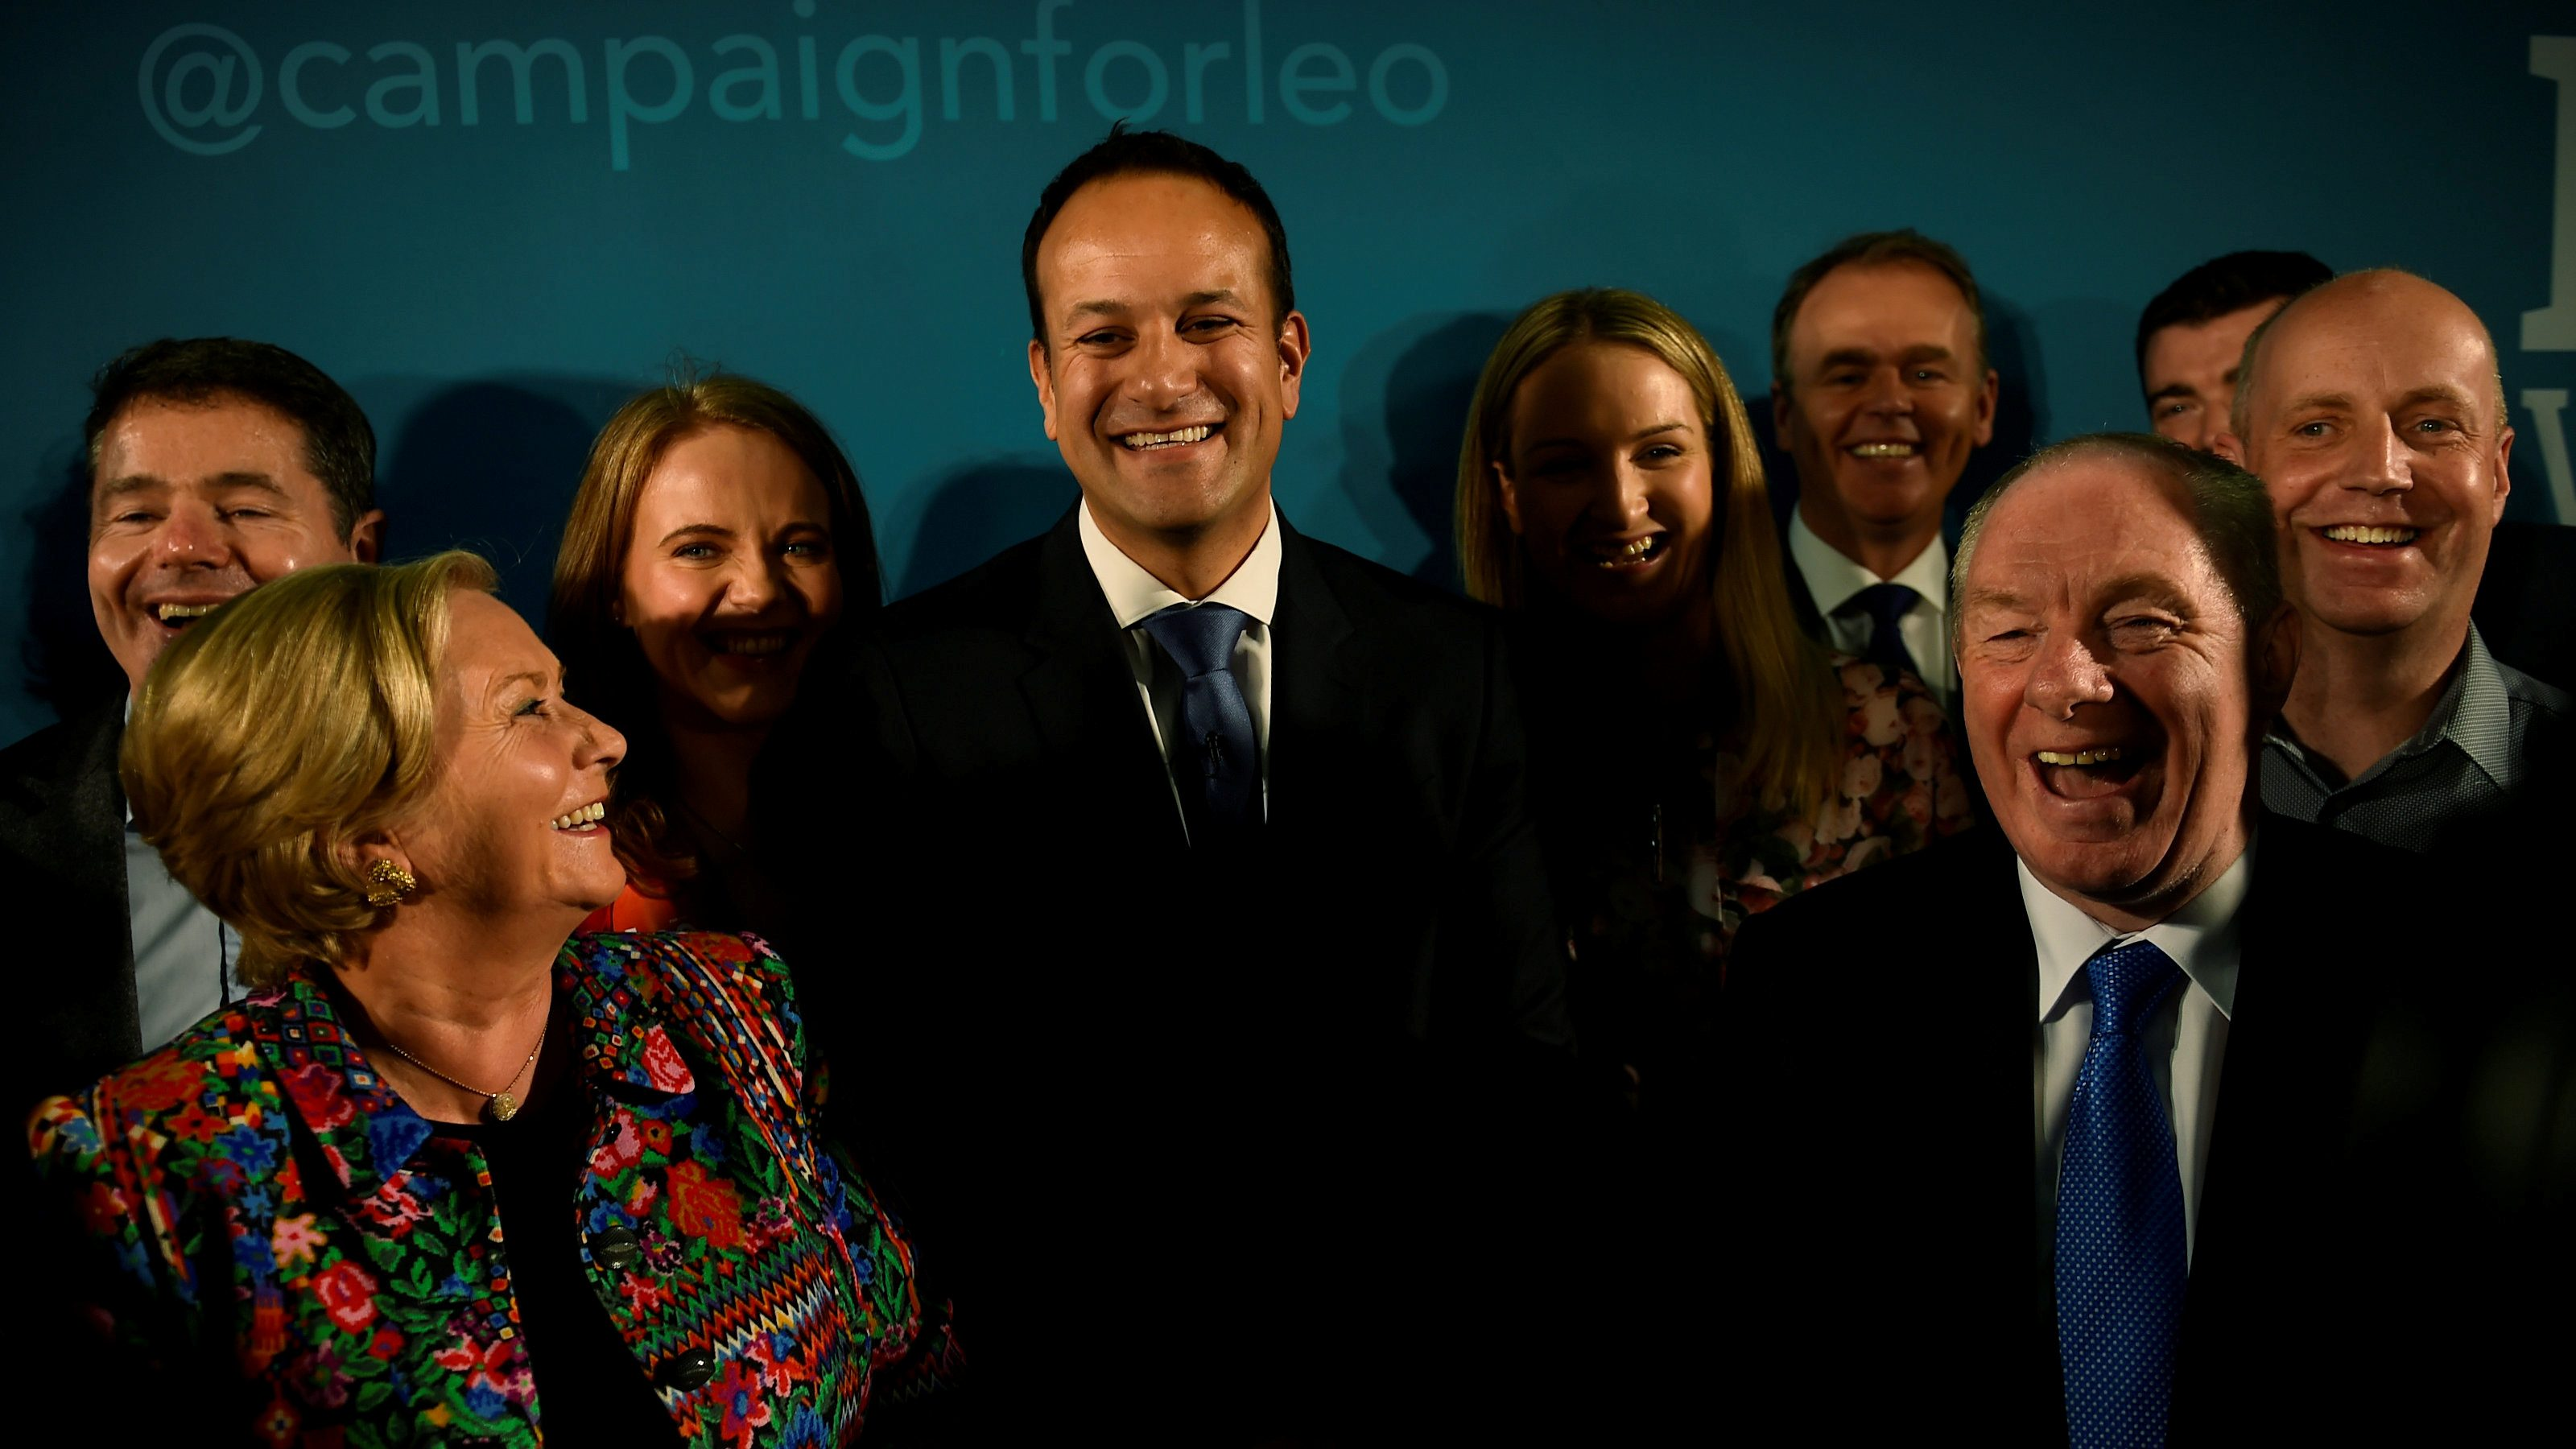 Ireland's Minister for Social Protection Leo Varadkar launches his campaign.